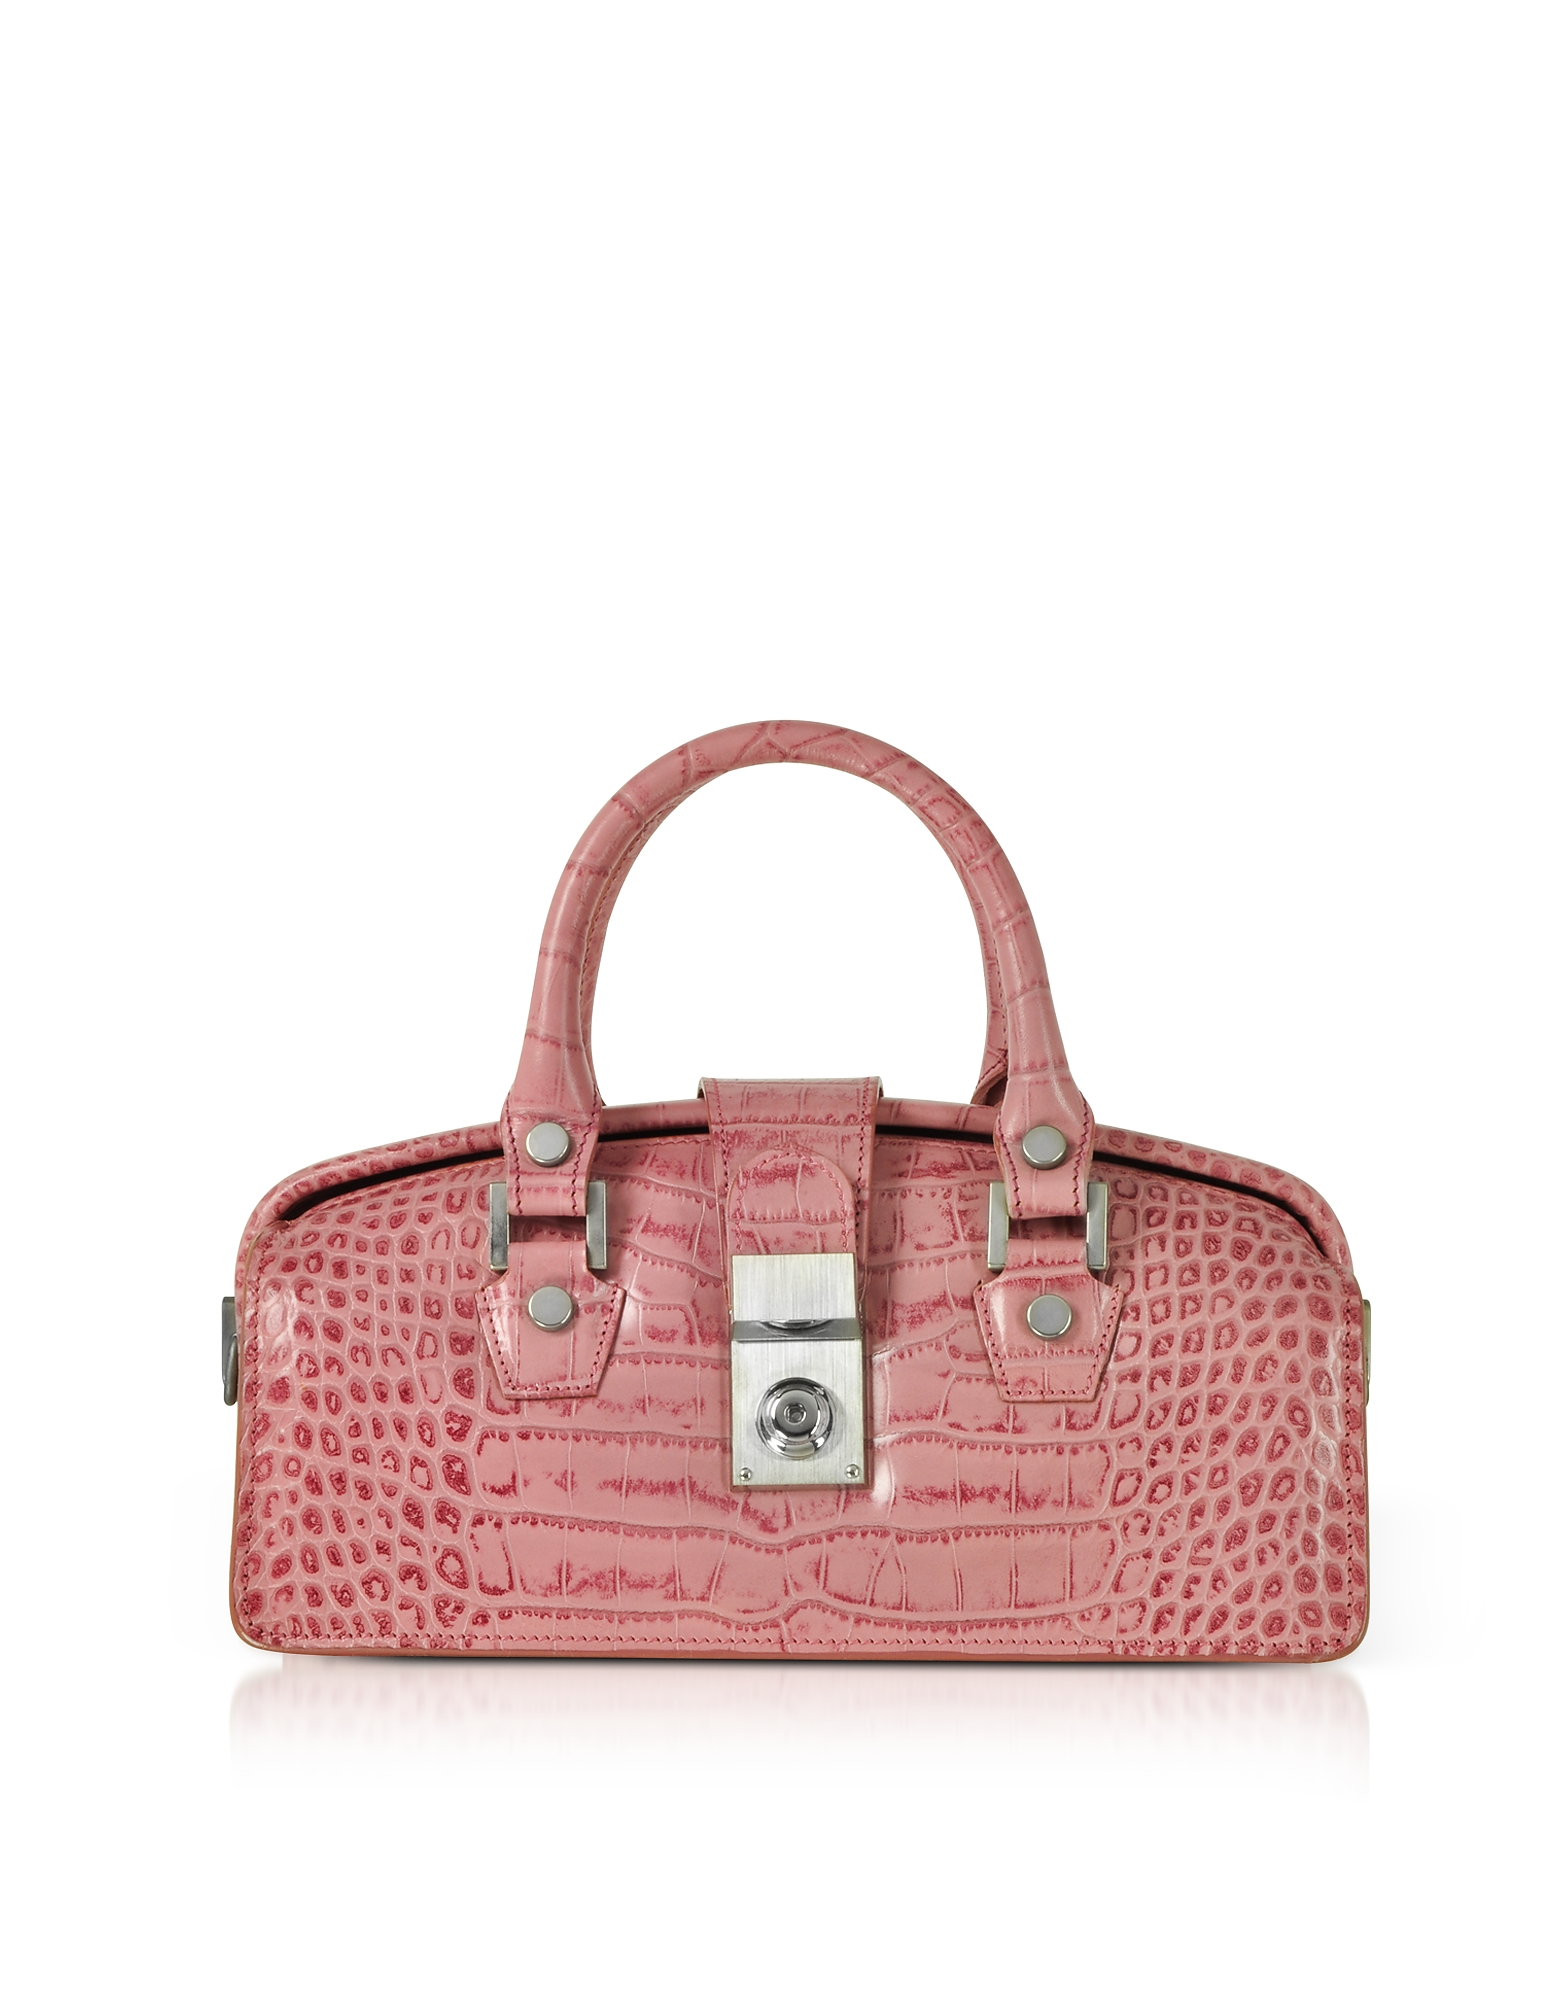 Image of L.A.P.A. Designer Handbags, Croco-embossed Mini Doctor Style Bag